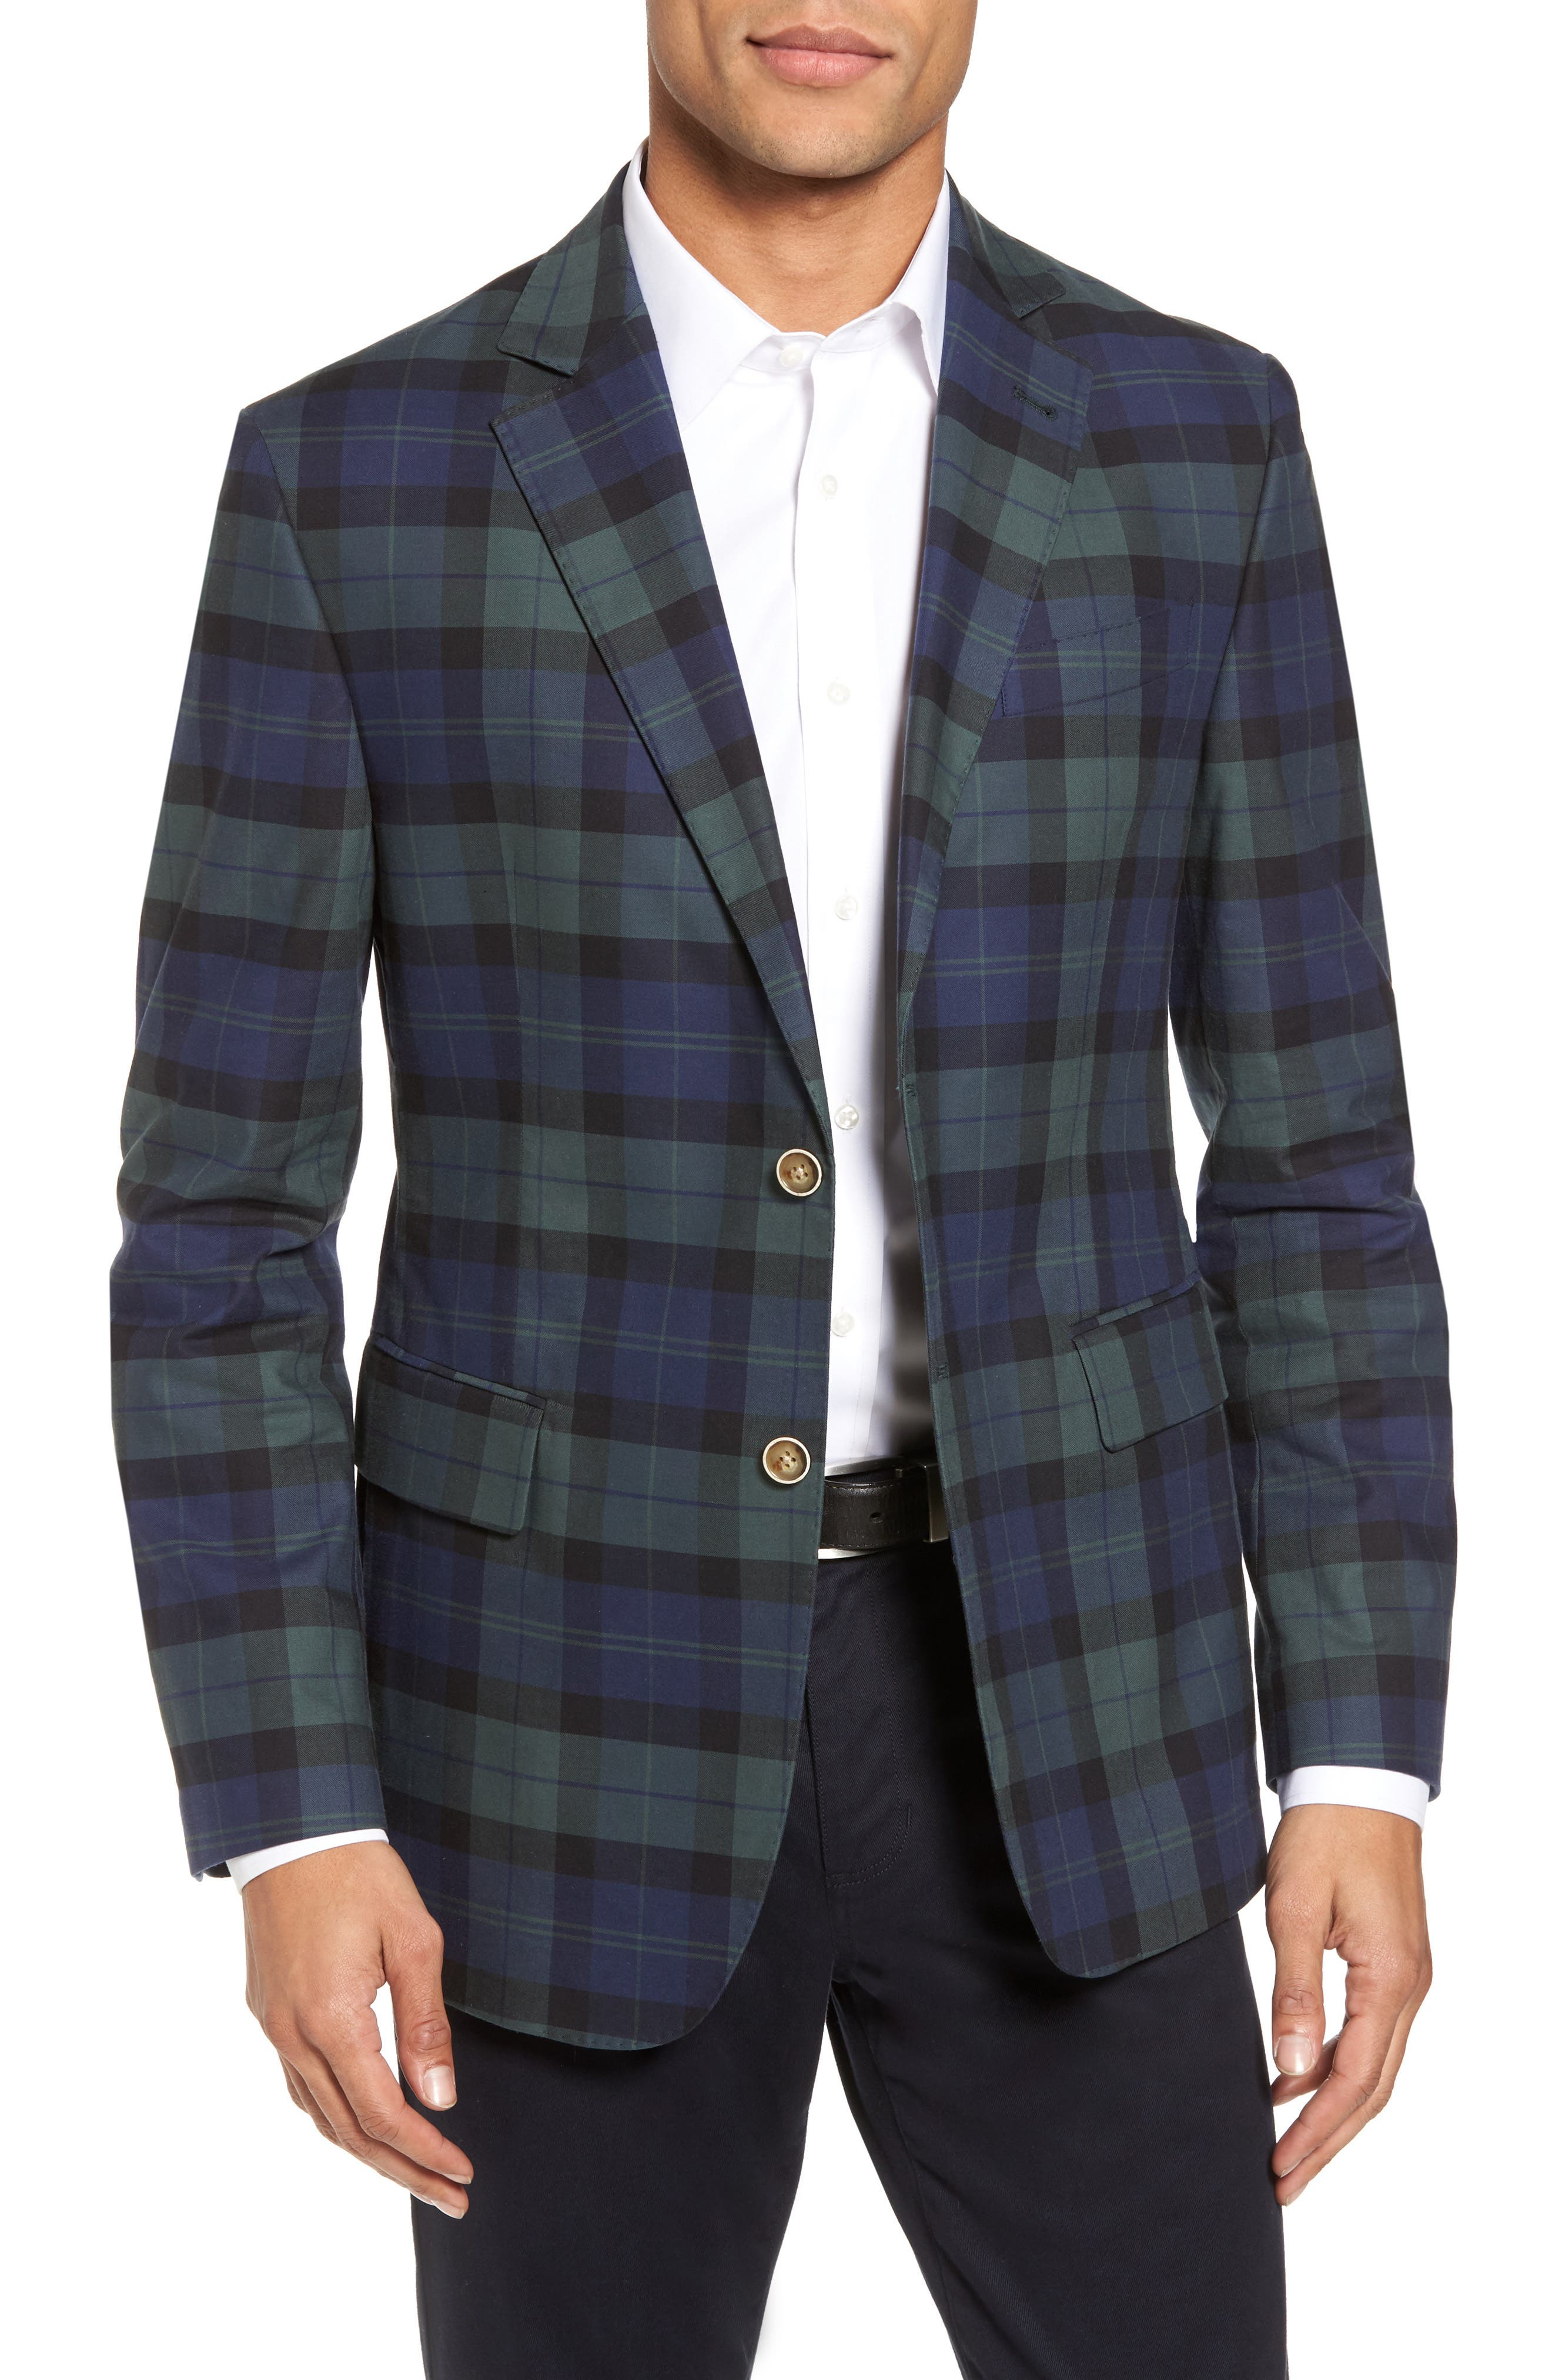 Main Image - vineyard vines Classic Fit Blackwatch Plaid Sport Coat